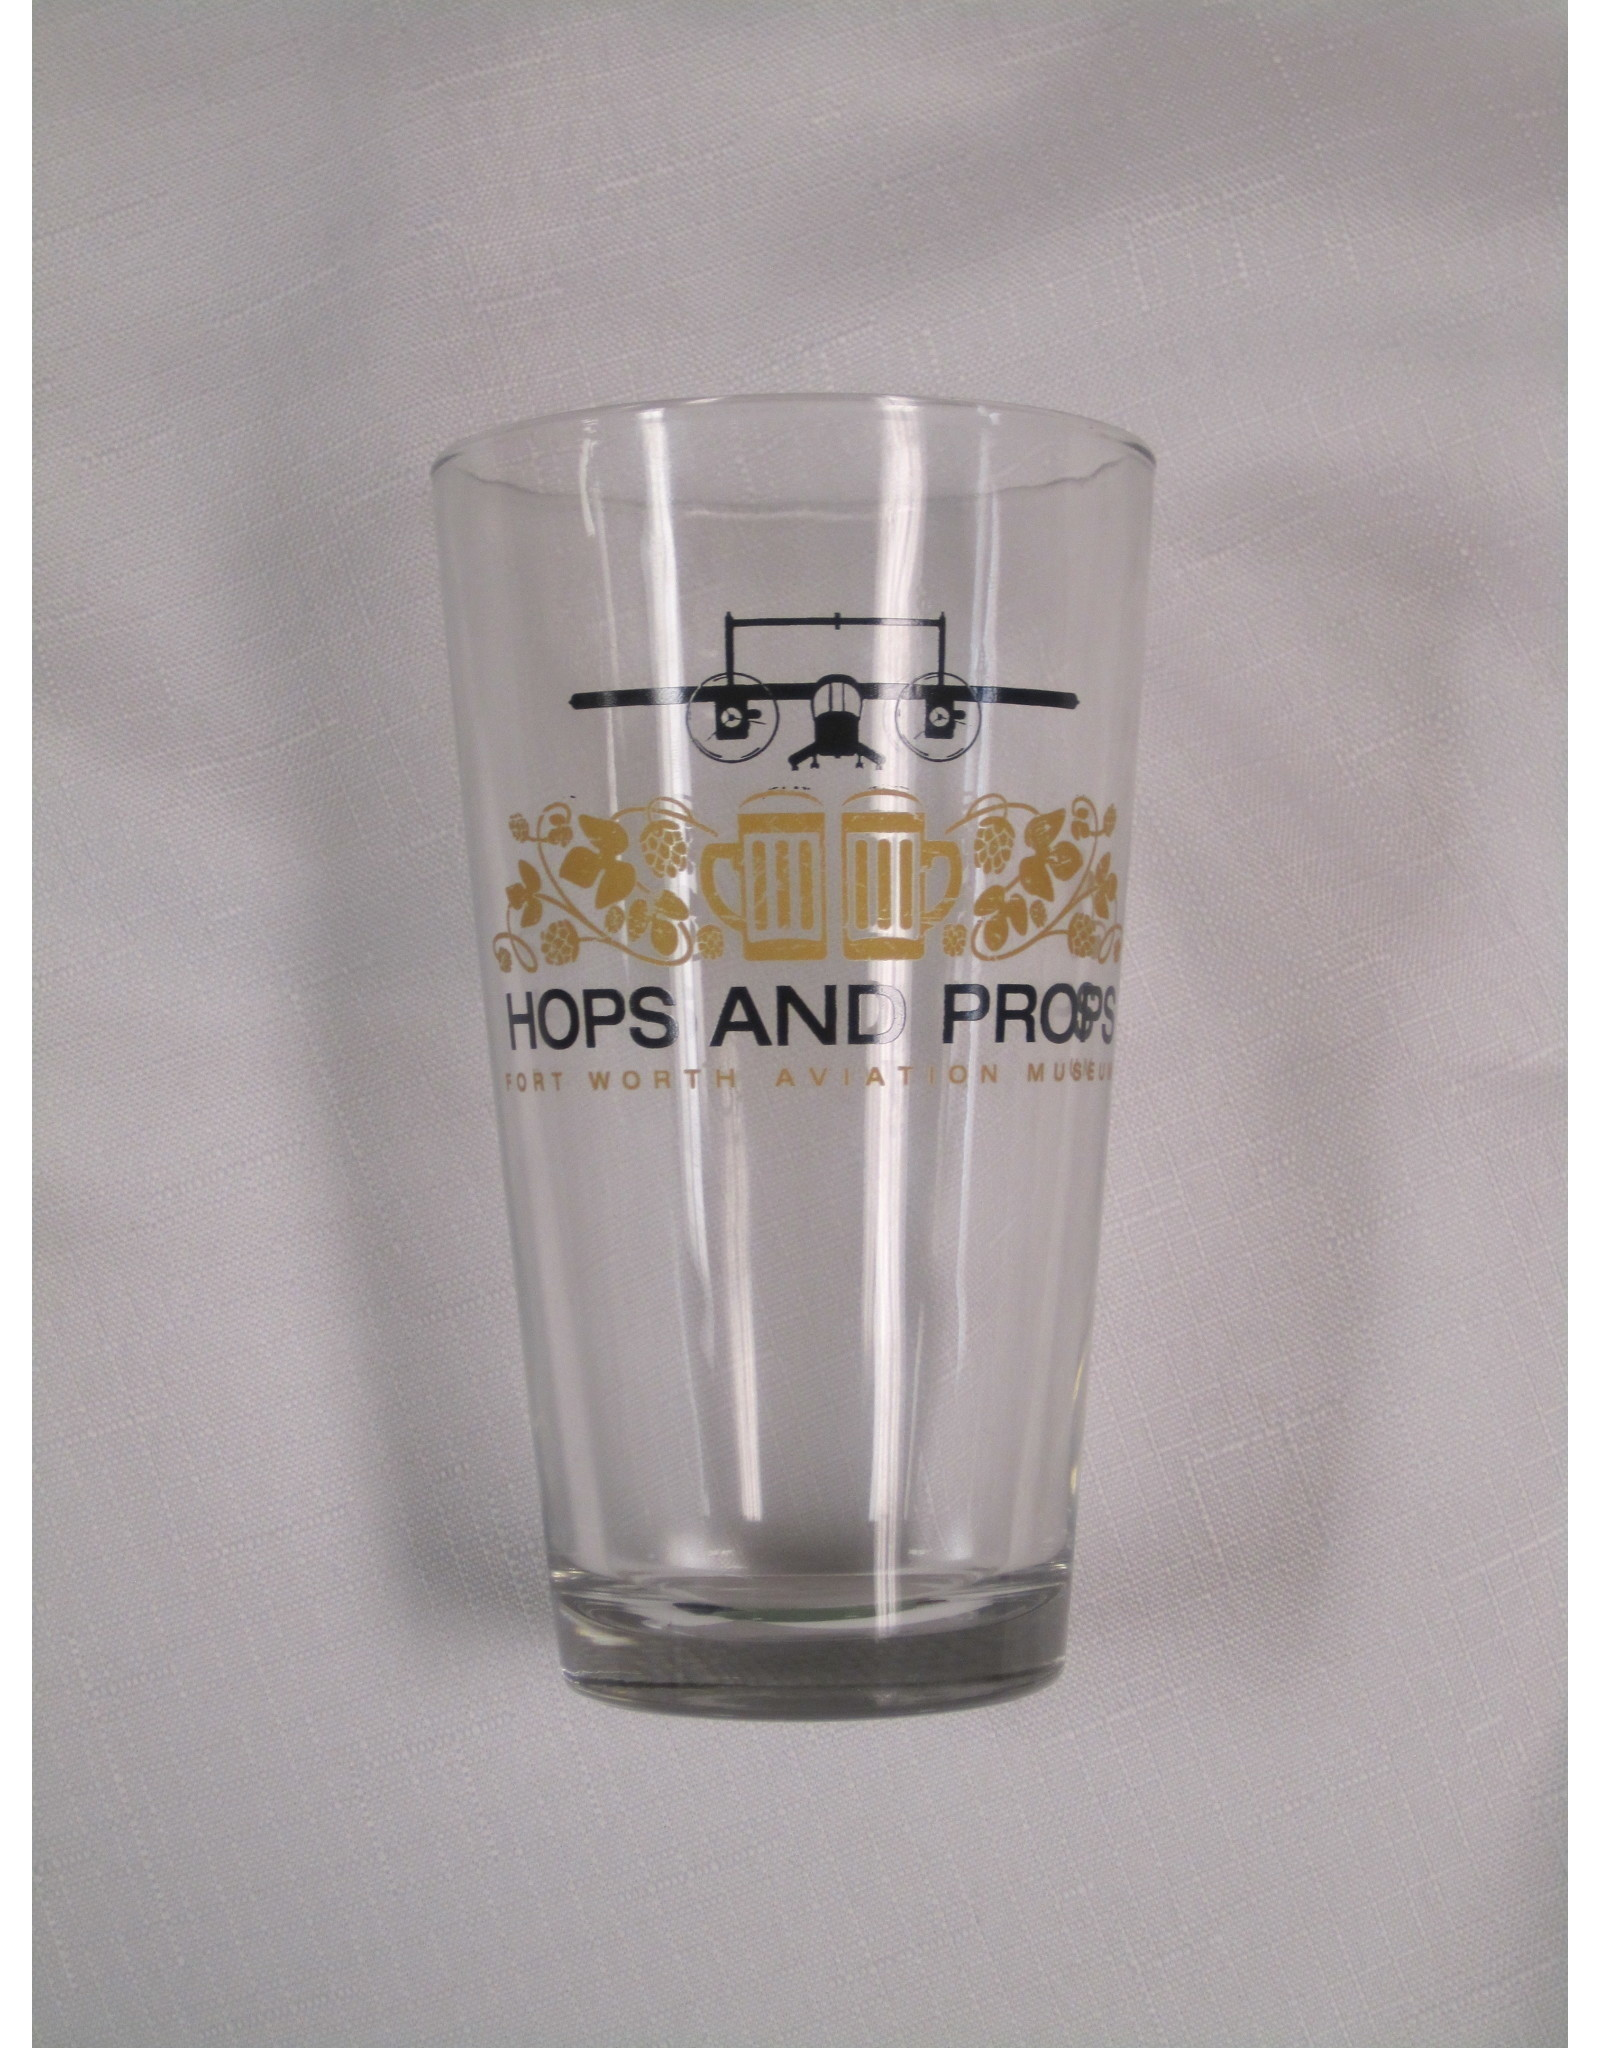 Hops and Props Pint Beer Glasses